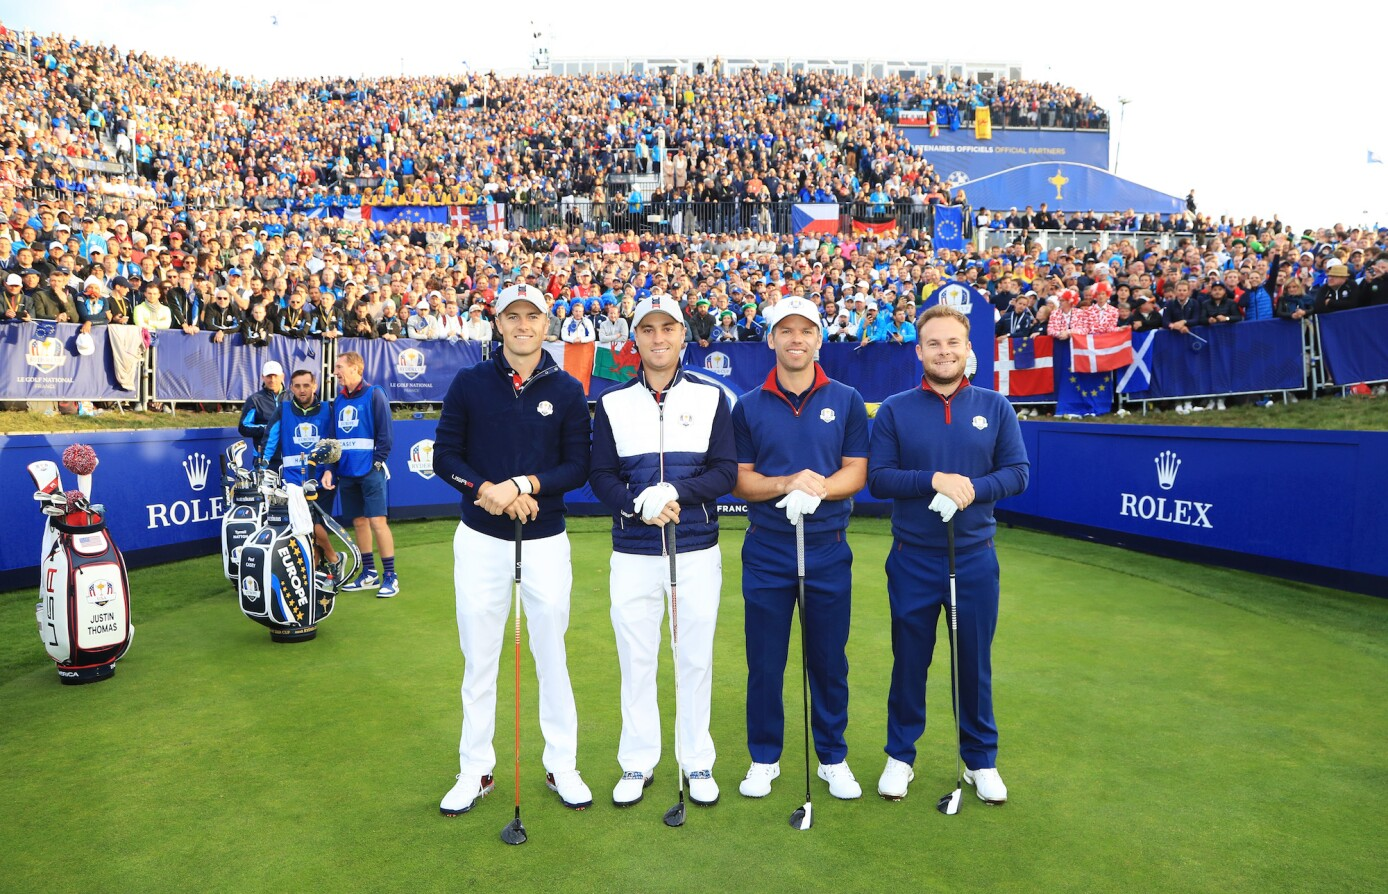 2018 Ryder Cup: Friday Morning Fourball - Team